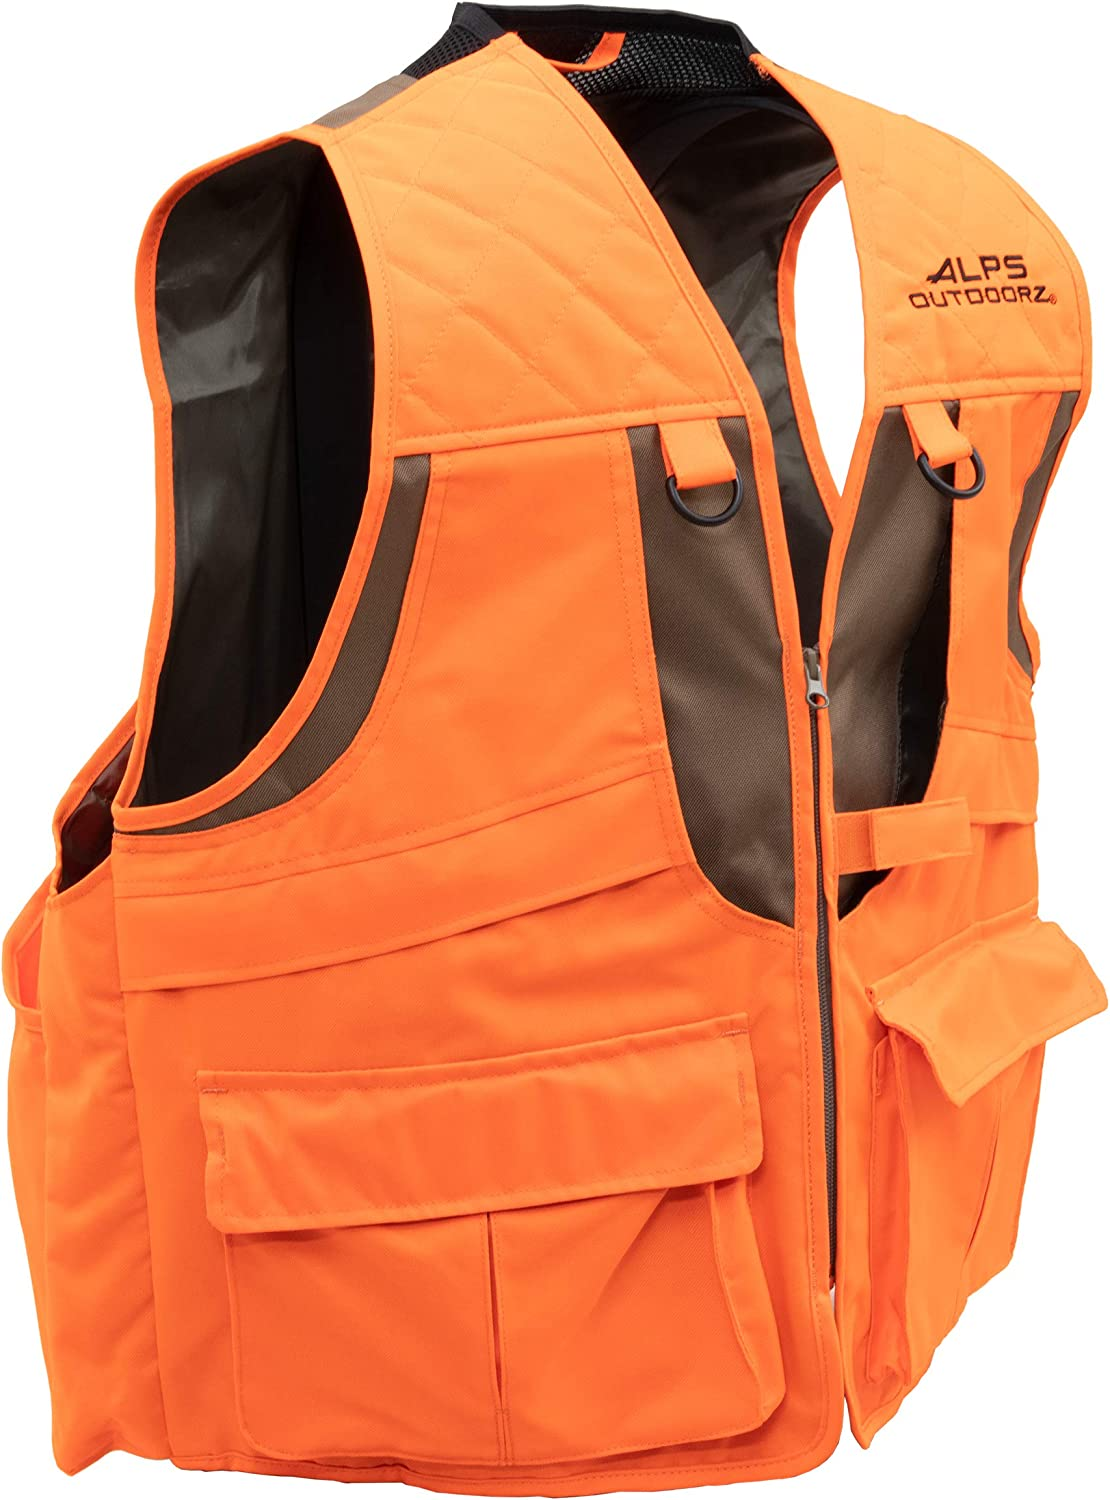 ALPS OutdoorZ Upland NEW before Reservation selling Game Vest M S